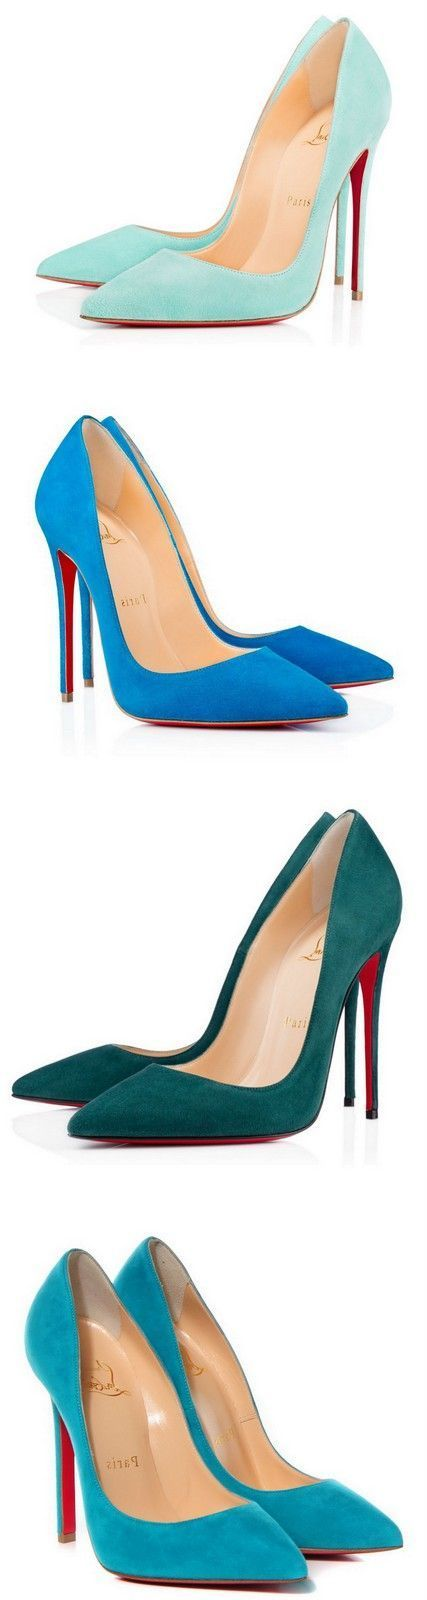 Christian Louboutin High Heels Collection More Luxury Details